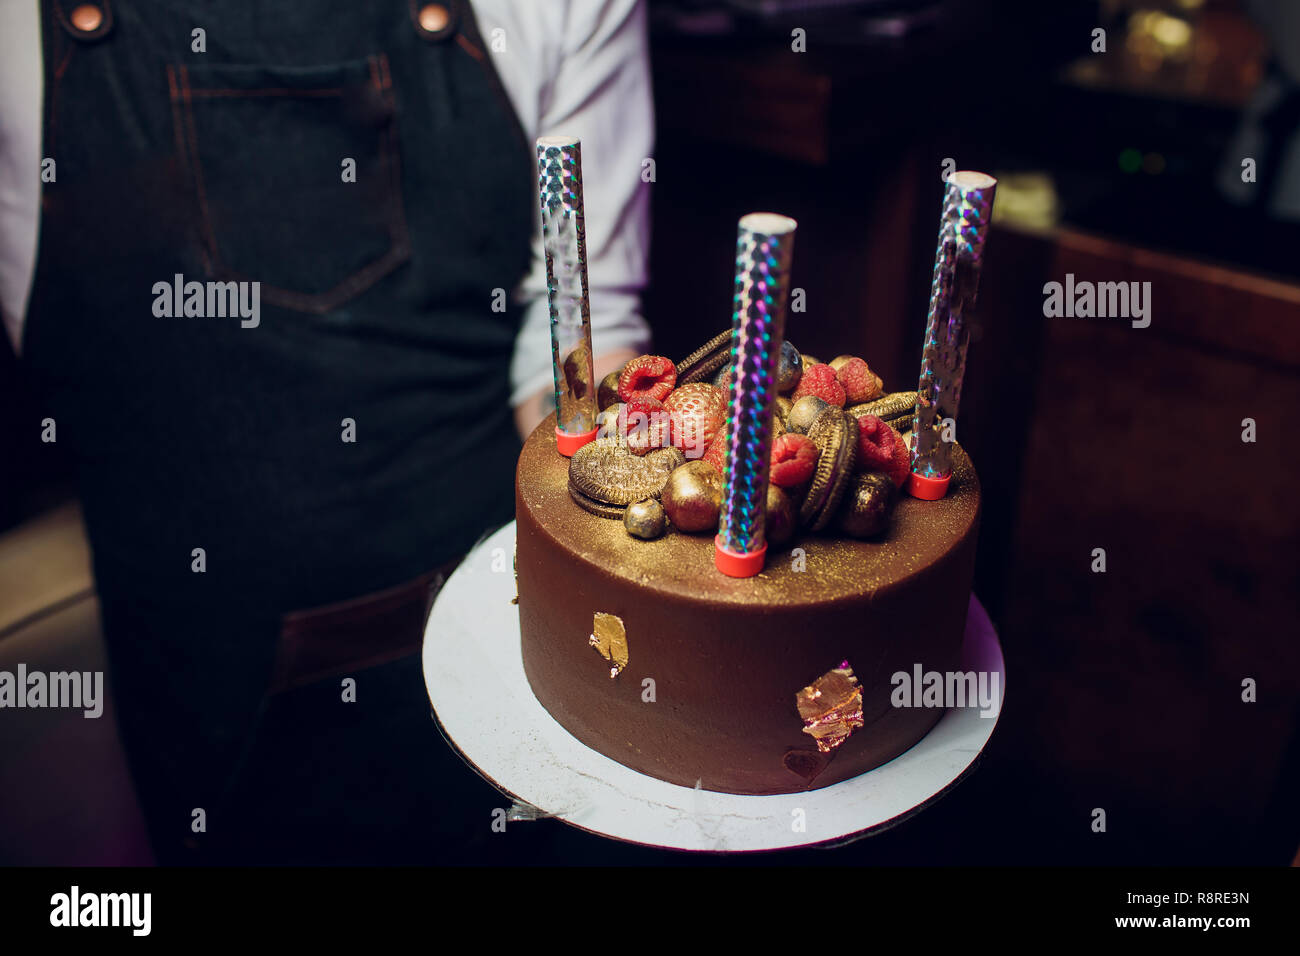 Magnificent Birthday Cake With Fireworks On Table Stock Photo 229168009 Alamy Funny Birthday Cards Online Alyptdamsfinfo